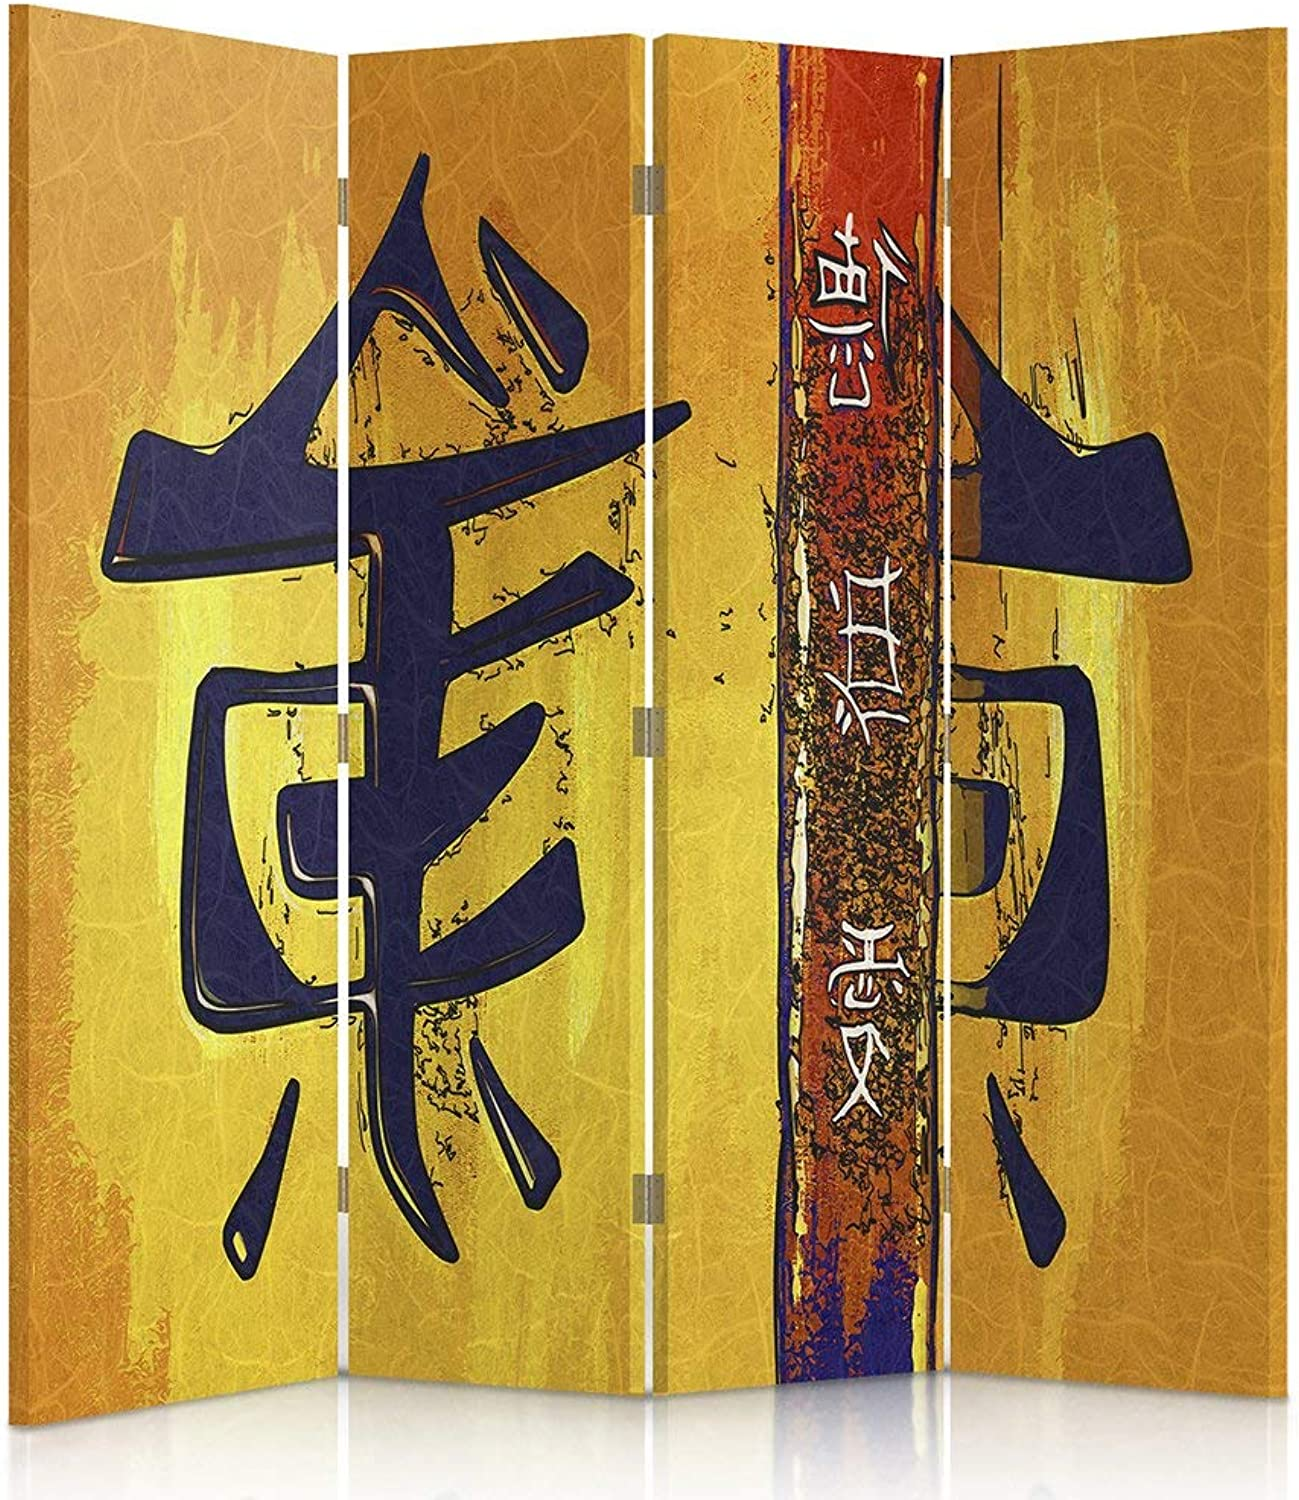 (2 Sided 145x150 cm) - Feeby Frames Canvas Screen, Decorative Room Divider, Paravent, Double Sided, 360C, 4 Panels (145x150 cm) Japanese Sign, Typography, RED, Yellow, Abstraction, Modern